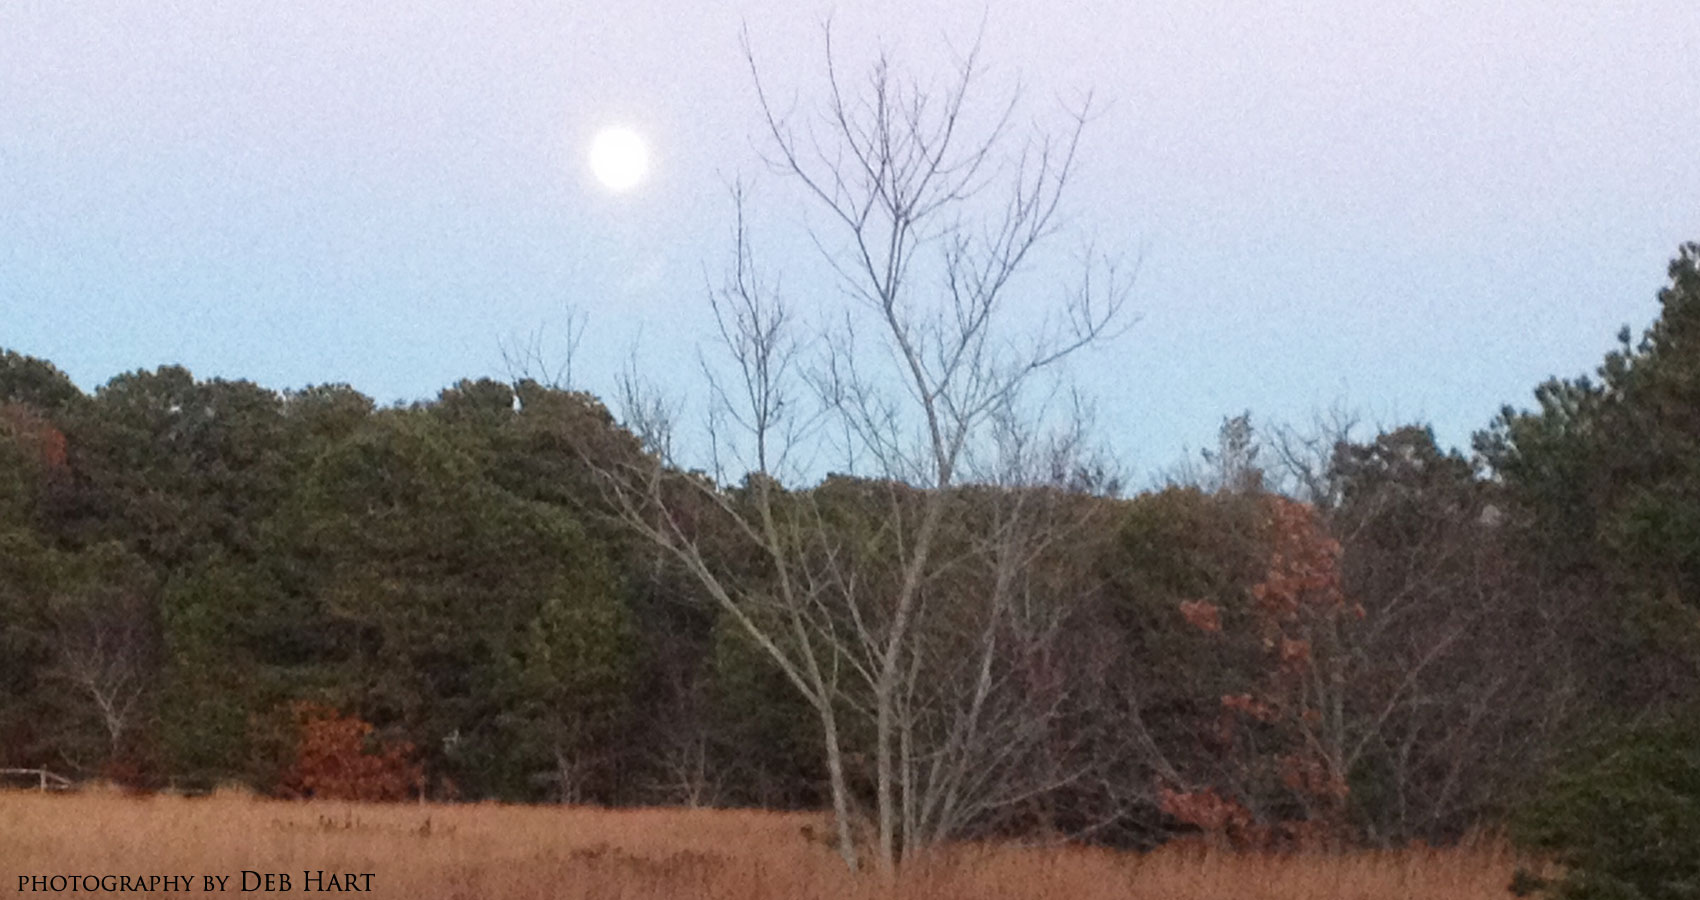 Moon Meadow, Martha's Vineyard by Anda Peterson at Spillwords.com